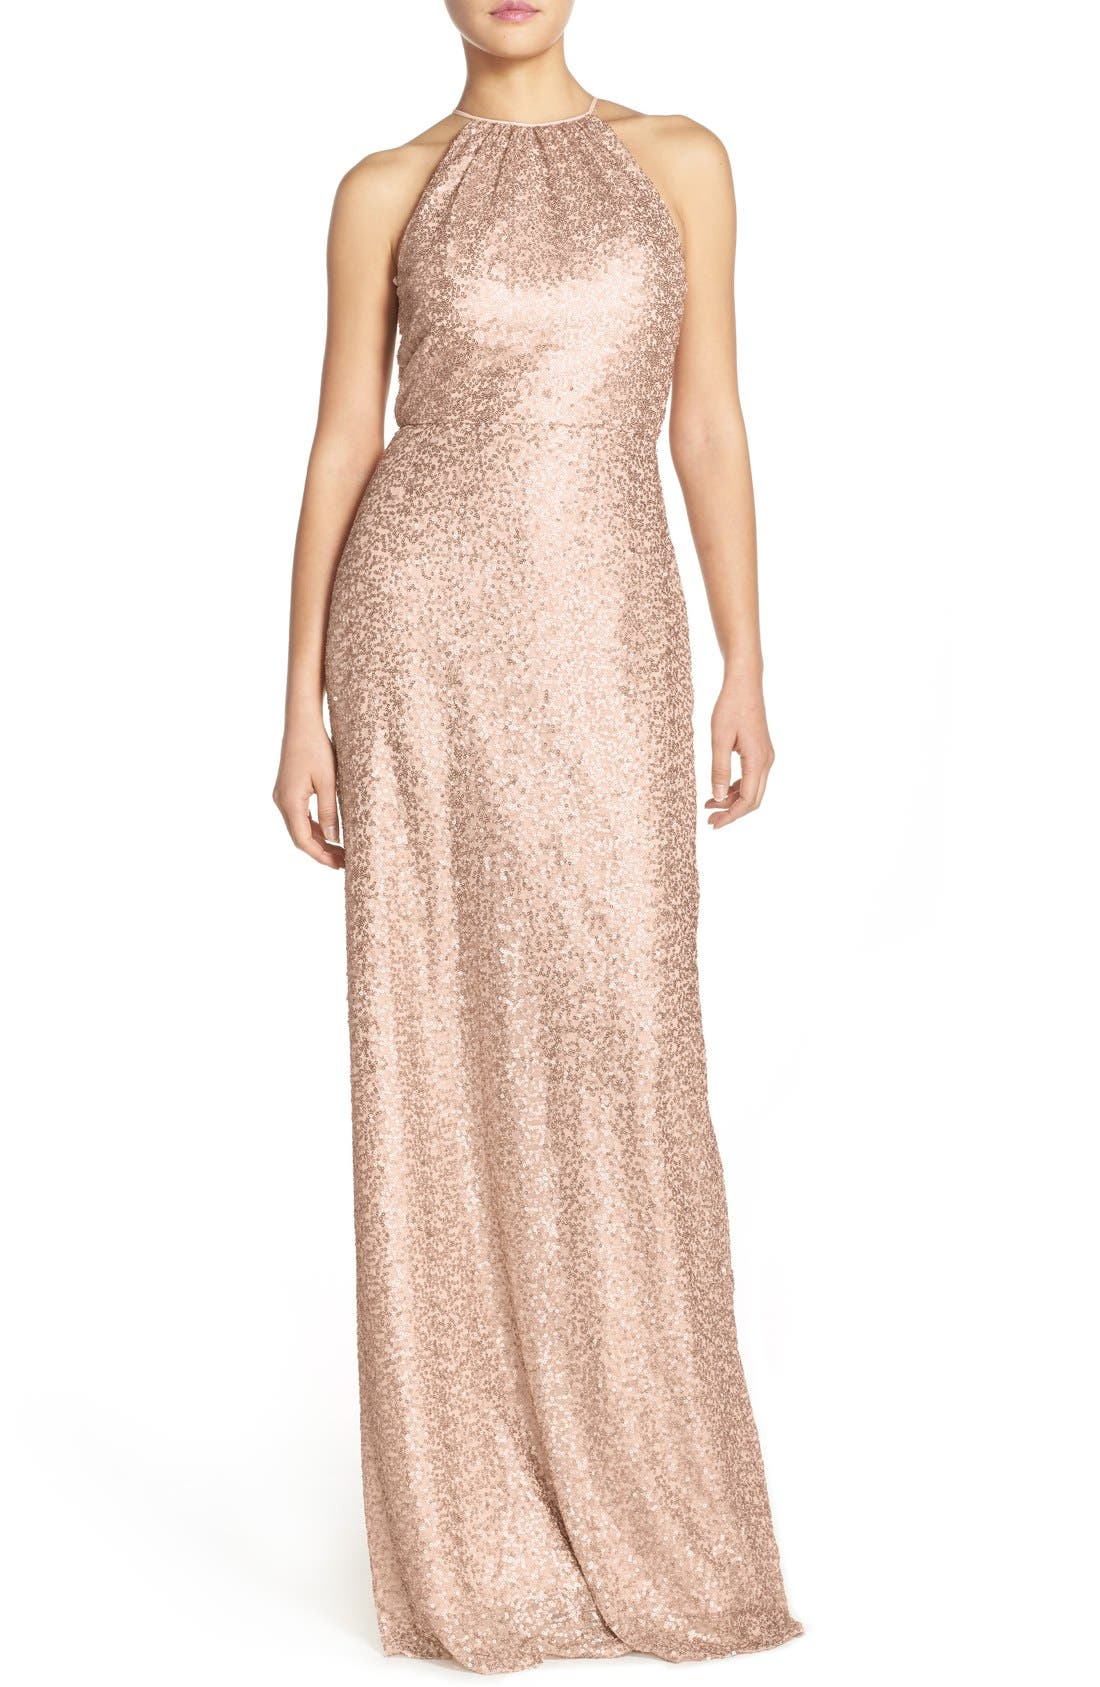 'Chandler' Sequin Tulle Halter Style Gown,                         Main,                         color, Latte